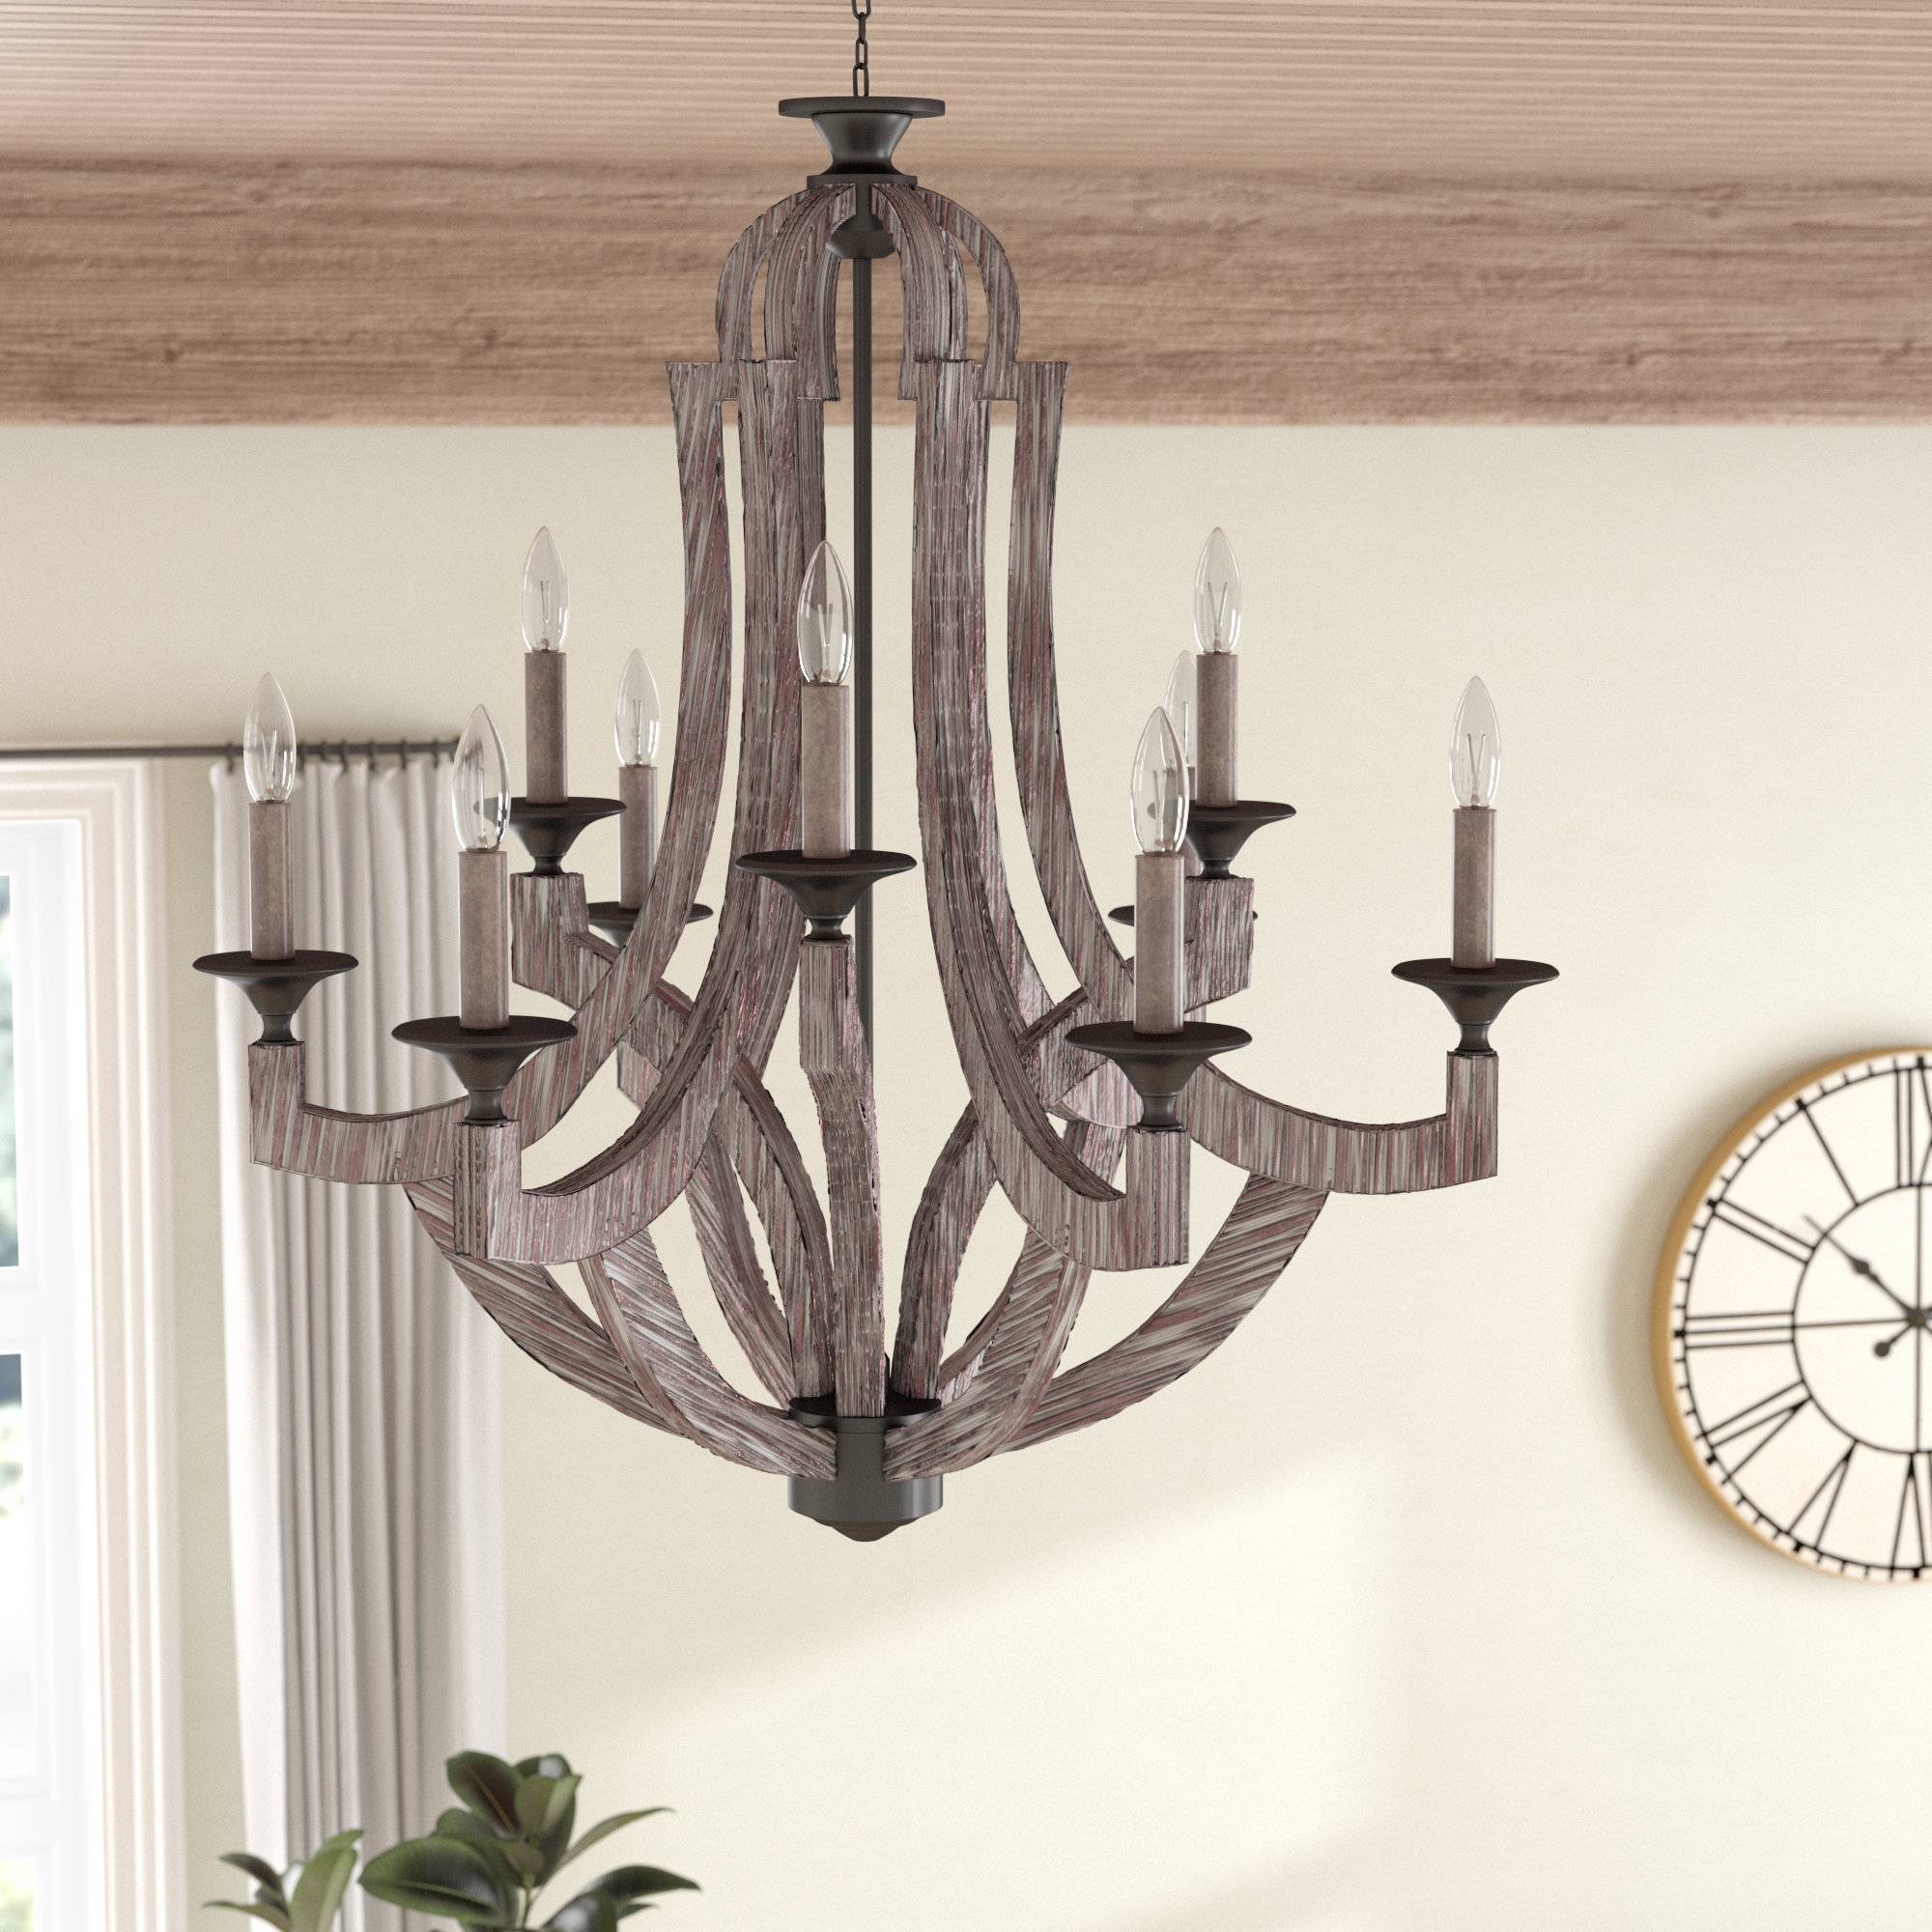 Wayfair With Regard To Most Up To Date Watford 9 Light Candle Style Chandeliers (View 19 of 20)